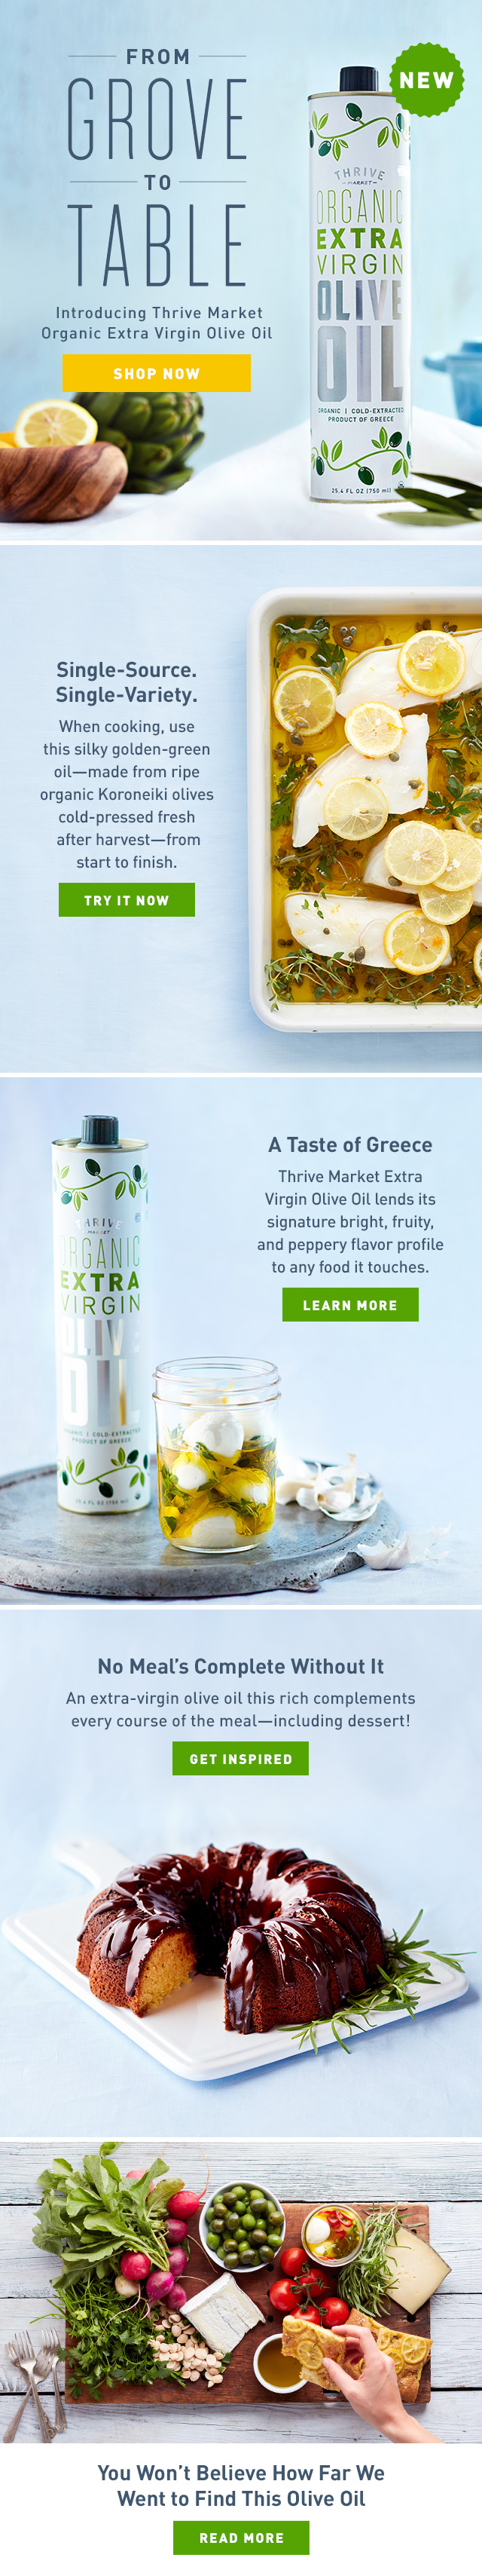 Thrive Market - Private Label Olive Oil